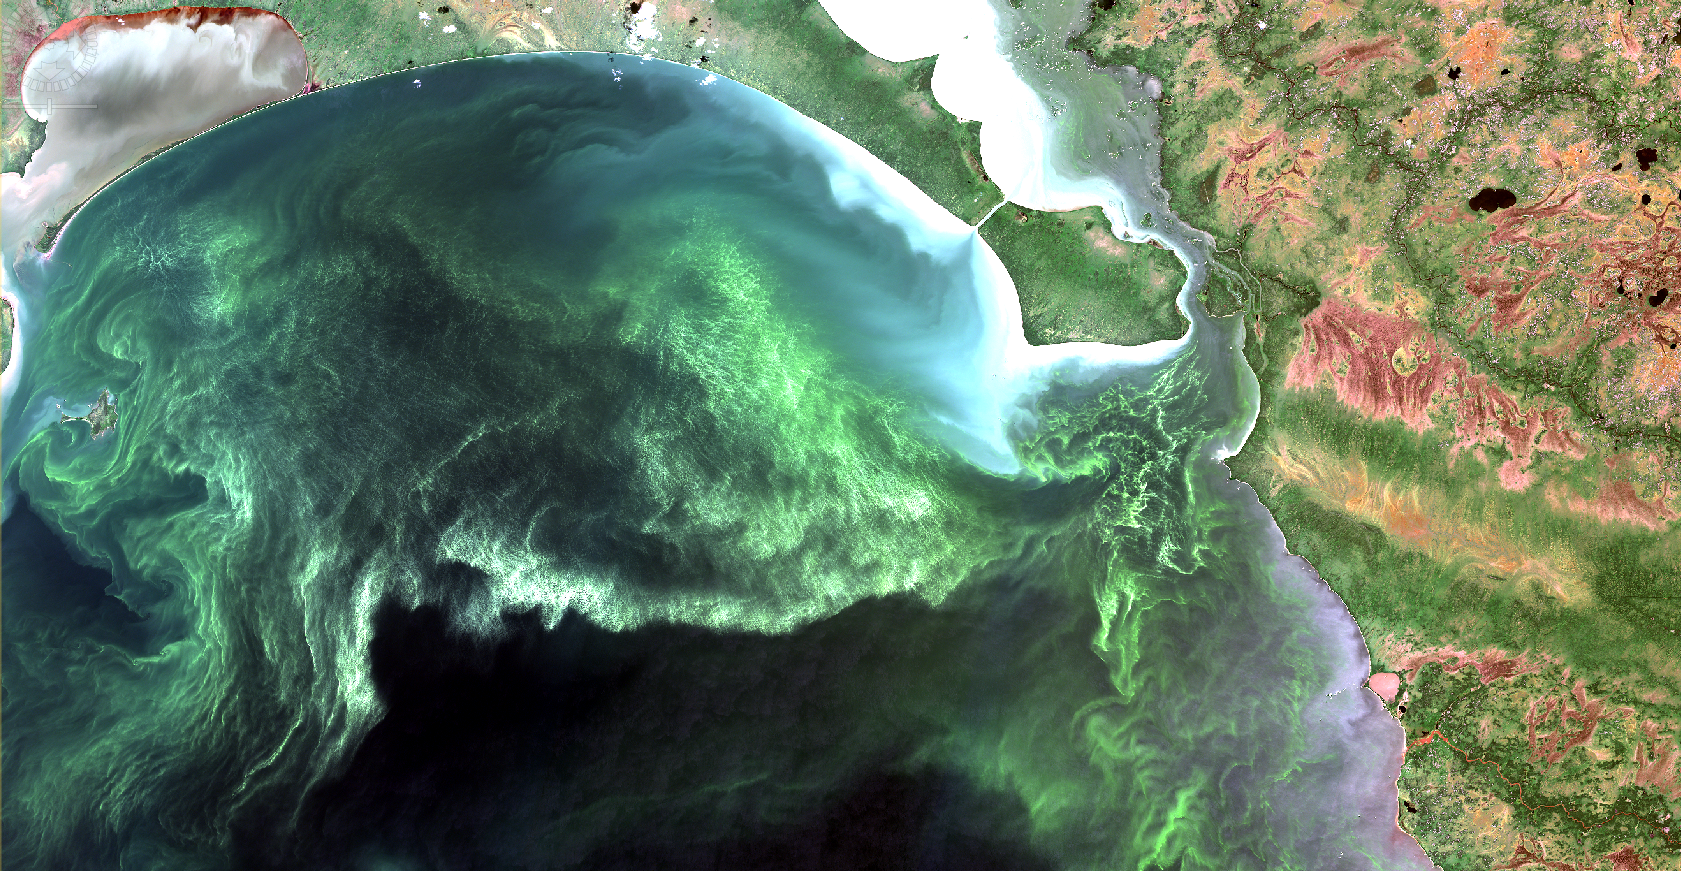 "Natural color composite of the North basin, Lake Winnipeg, August 2, 2017 at 10 m resolution. Green areas are algal blooms, dark areas are relatively clear water, bright areas are strongly reflective due to suspended sediments near the surface. Rivers from the east have pooled humic ""tea stained"" water along the east shore. A rather striking, but unfortunate, image that speaks volumes about the state of our lake. Copyright: contains modified ESA data."